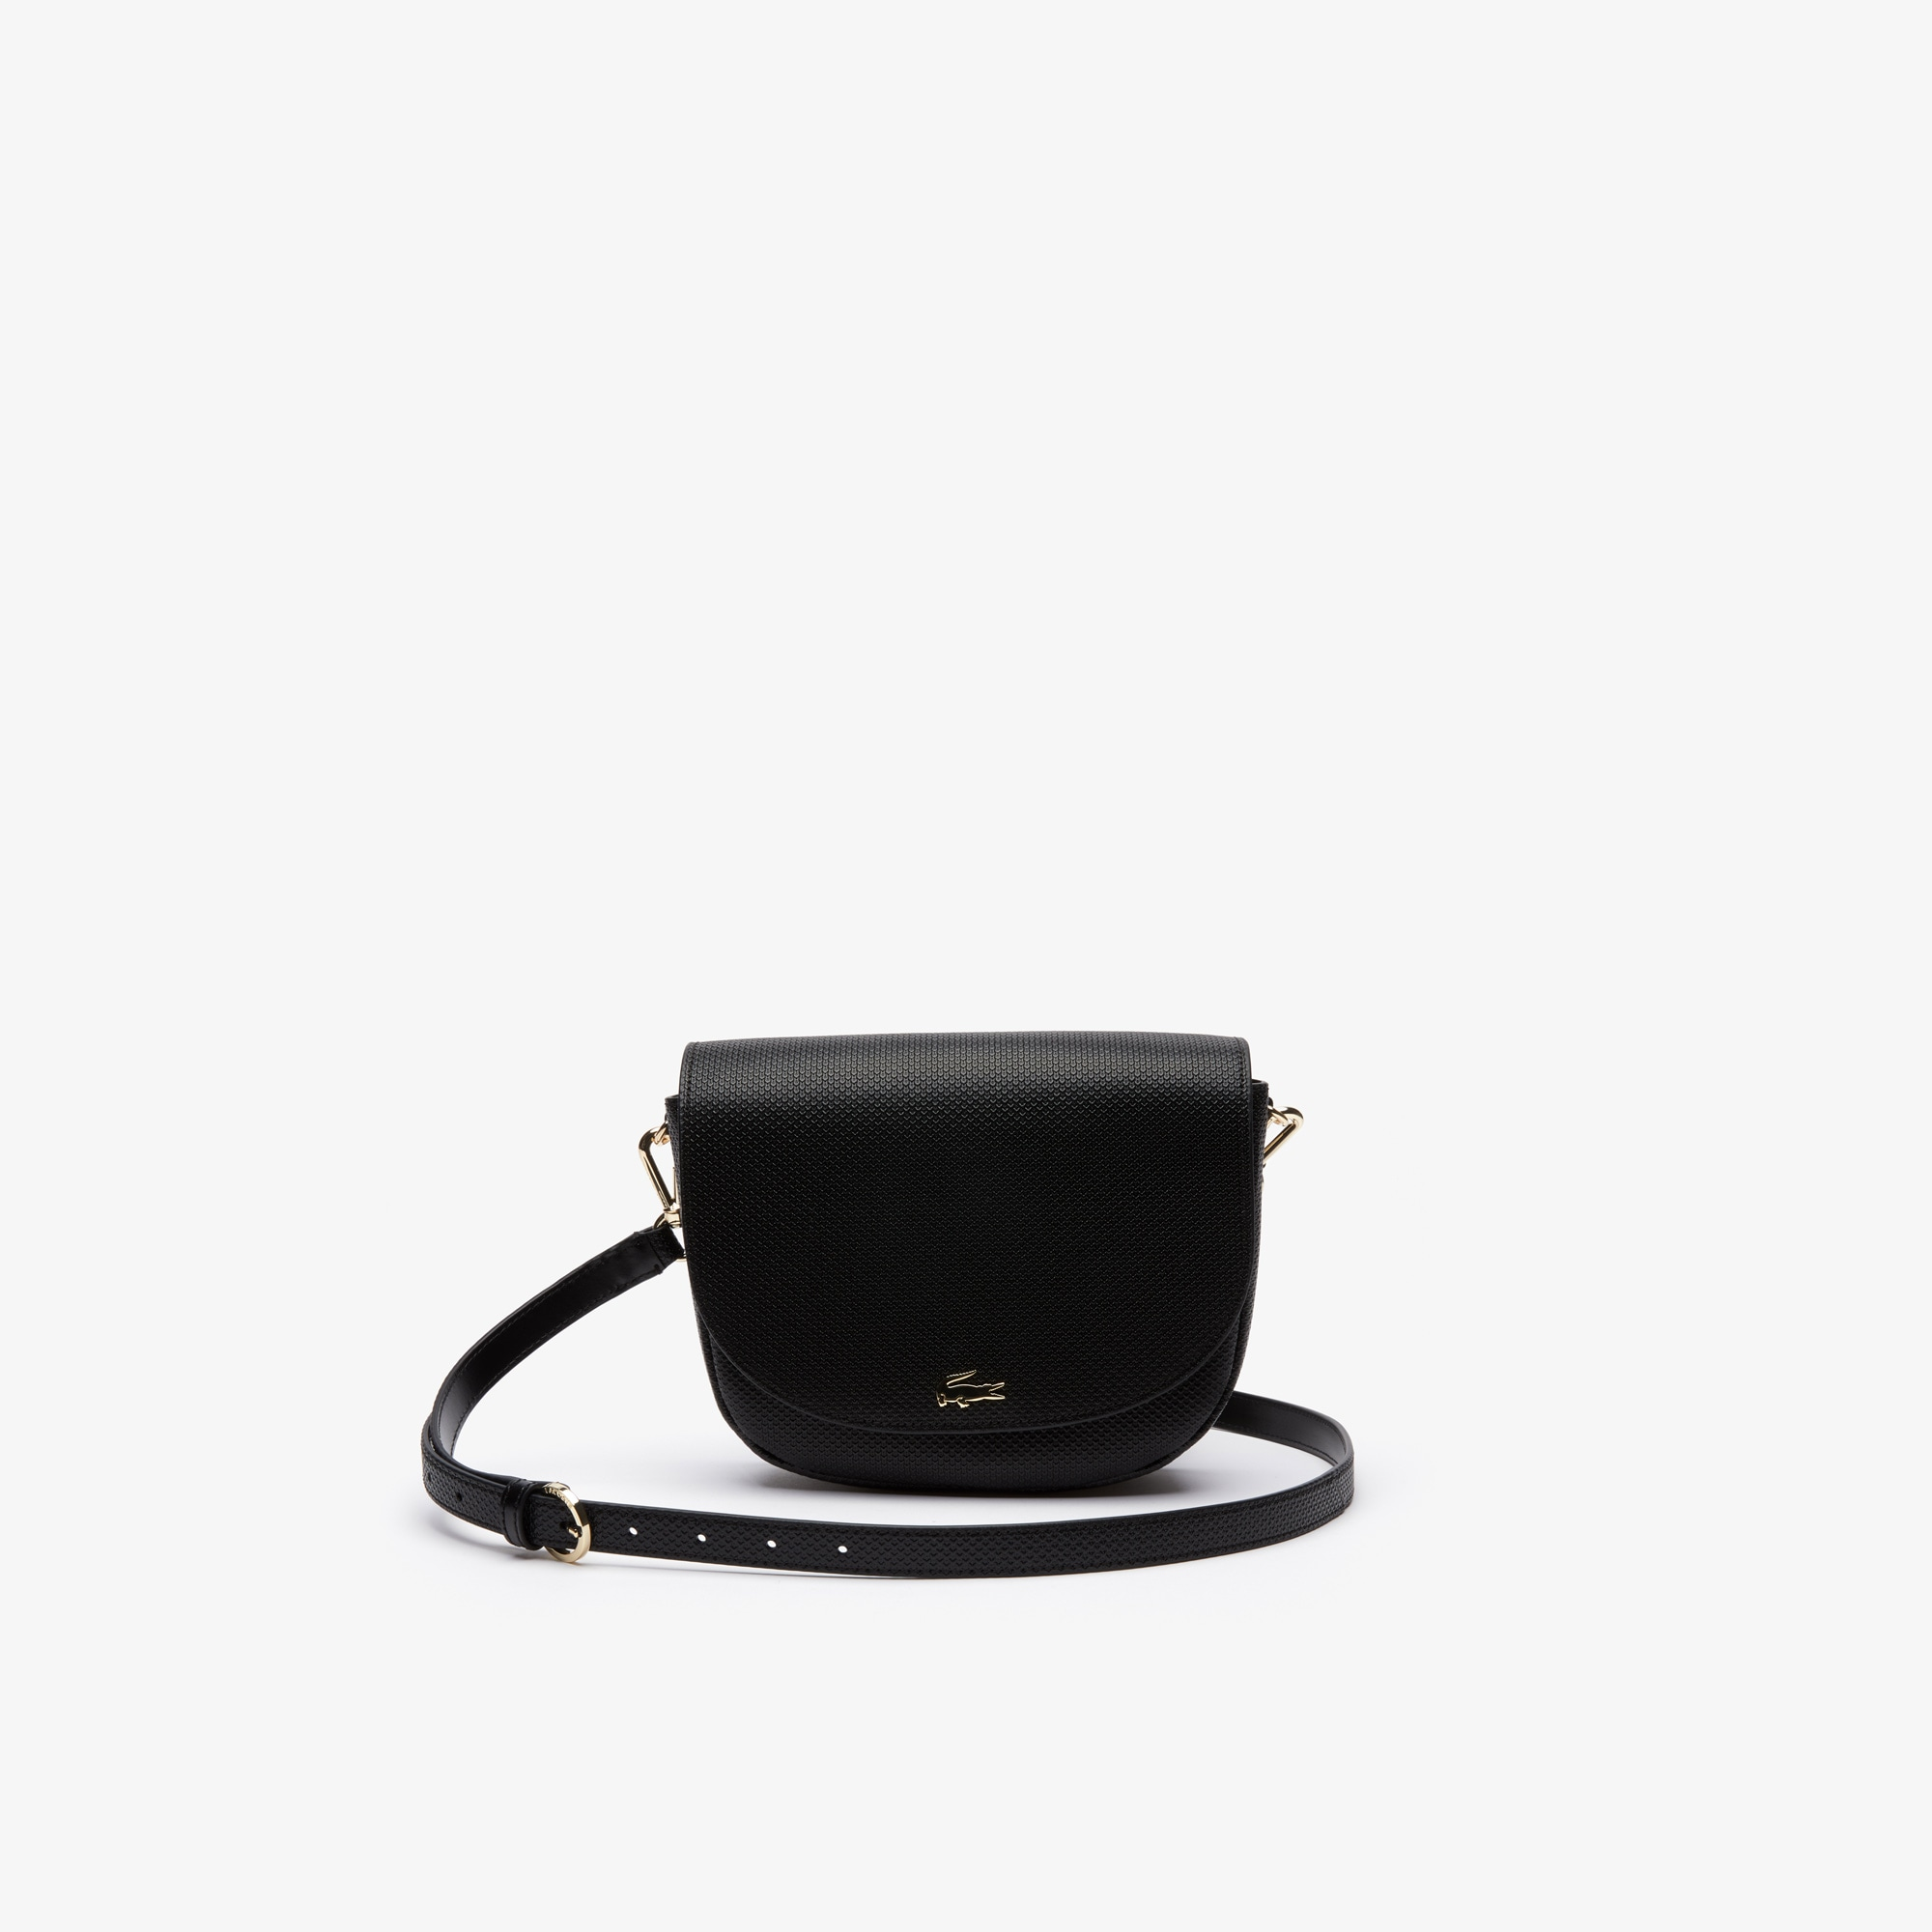 35e205a00576 Leather Bags and Accessories| Leather Goods | LACOSTE